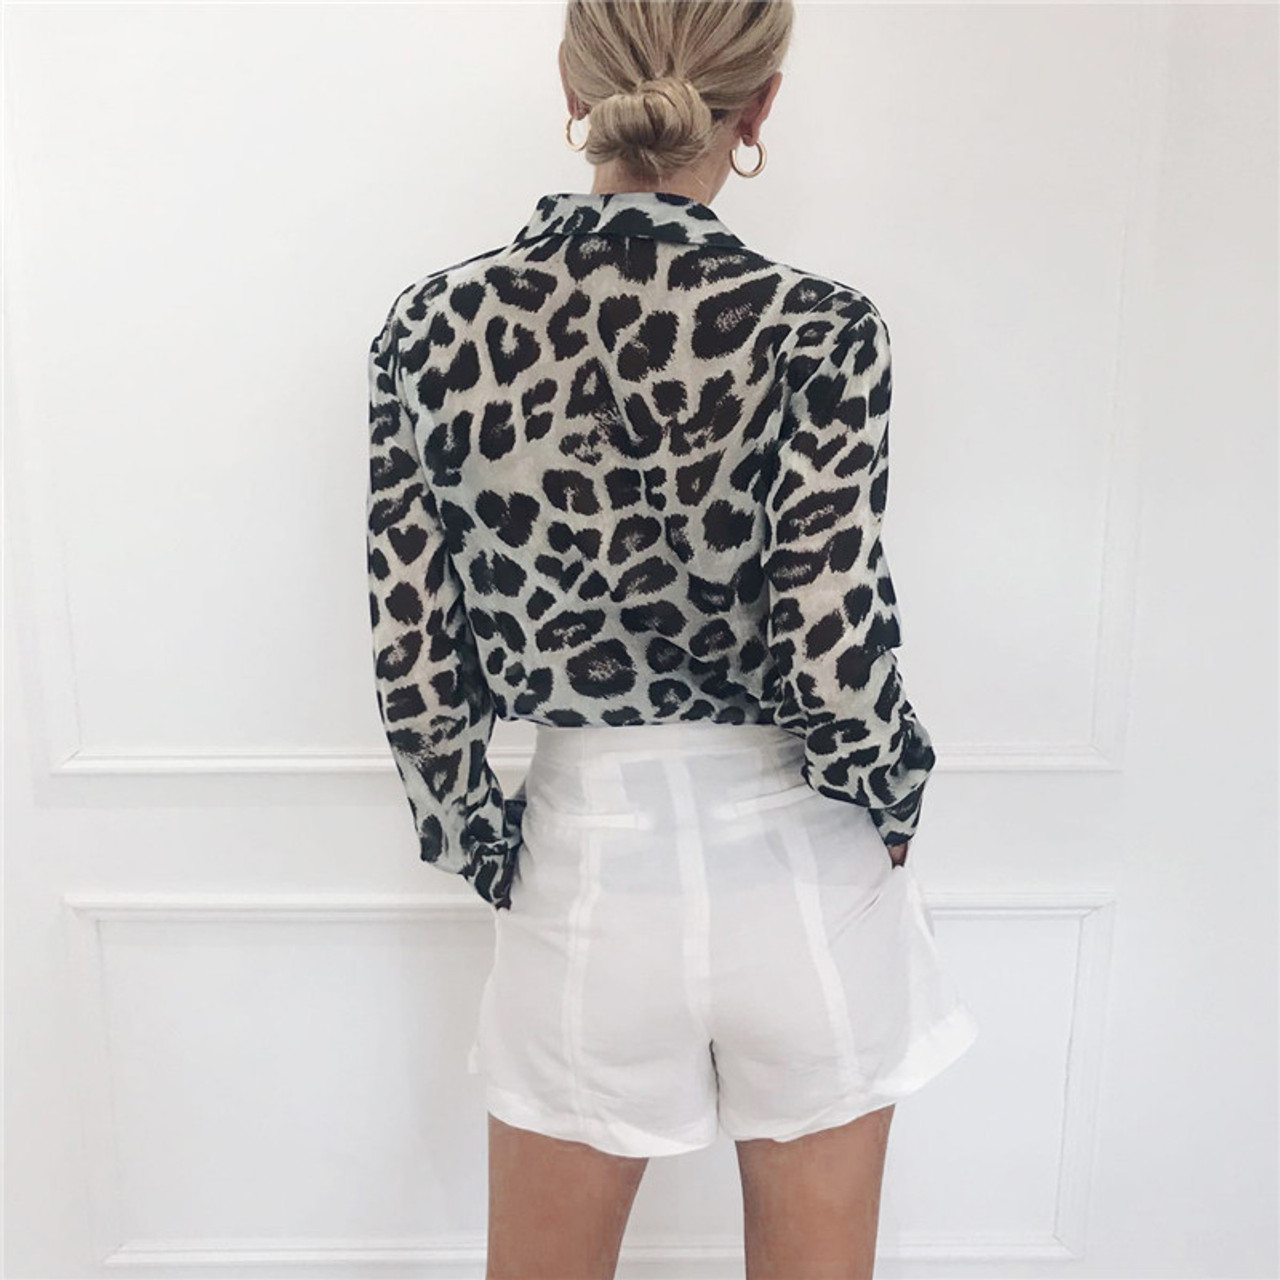 2c729876 ... Chiffon Blouse Long Sleeve Sexy Leopard Print Blouse Turn Down Collar  Lady Office Shirt Tunic Casual ...